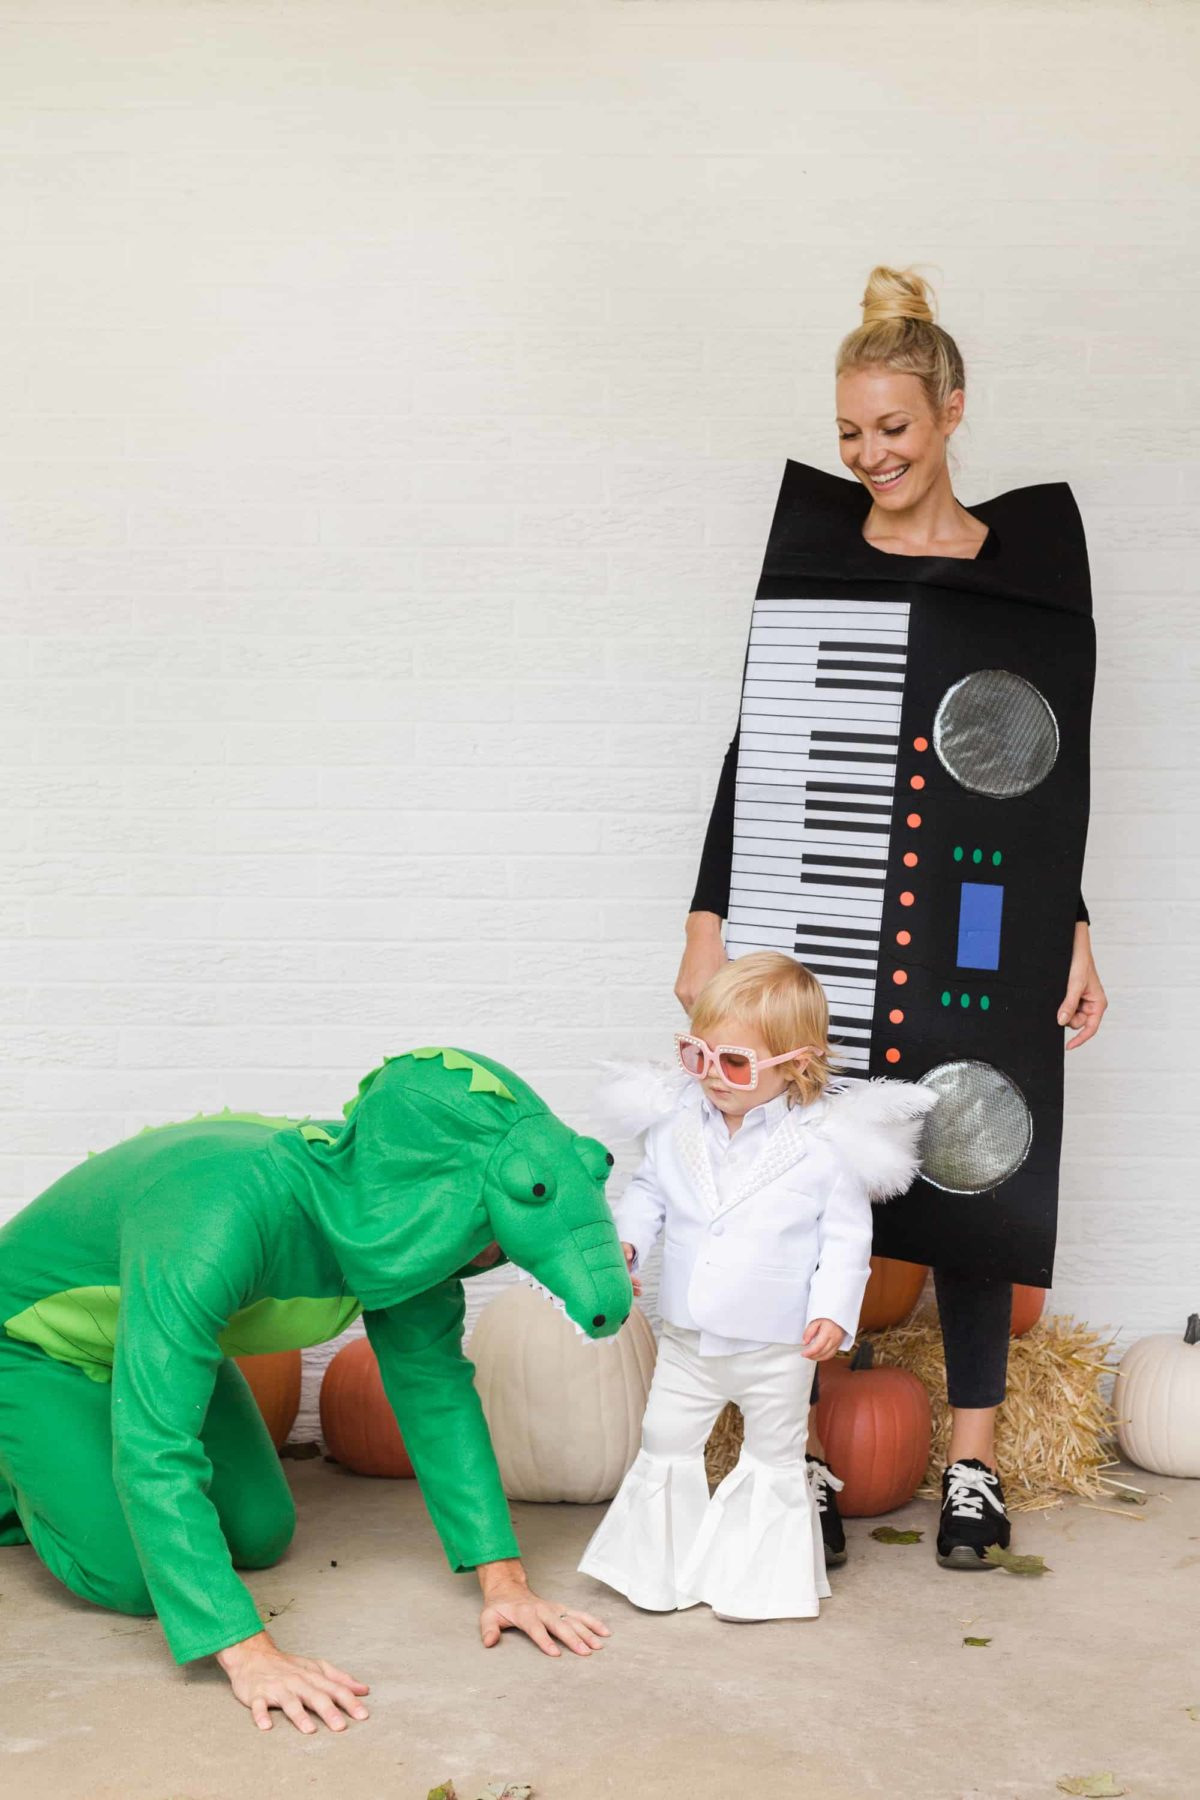 déguisement diy idée costume diy déguisement famille enfant parent crocodile costume piano ange chanteur - blog déco - clem around the corner